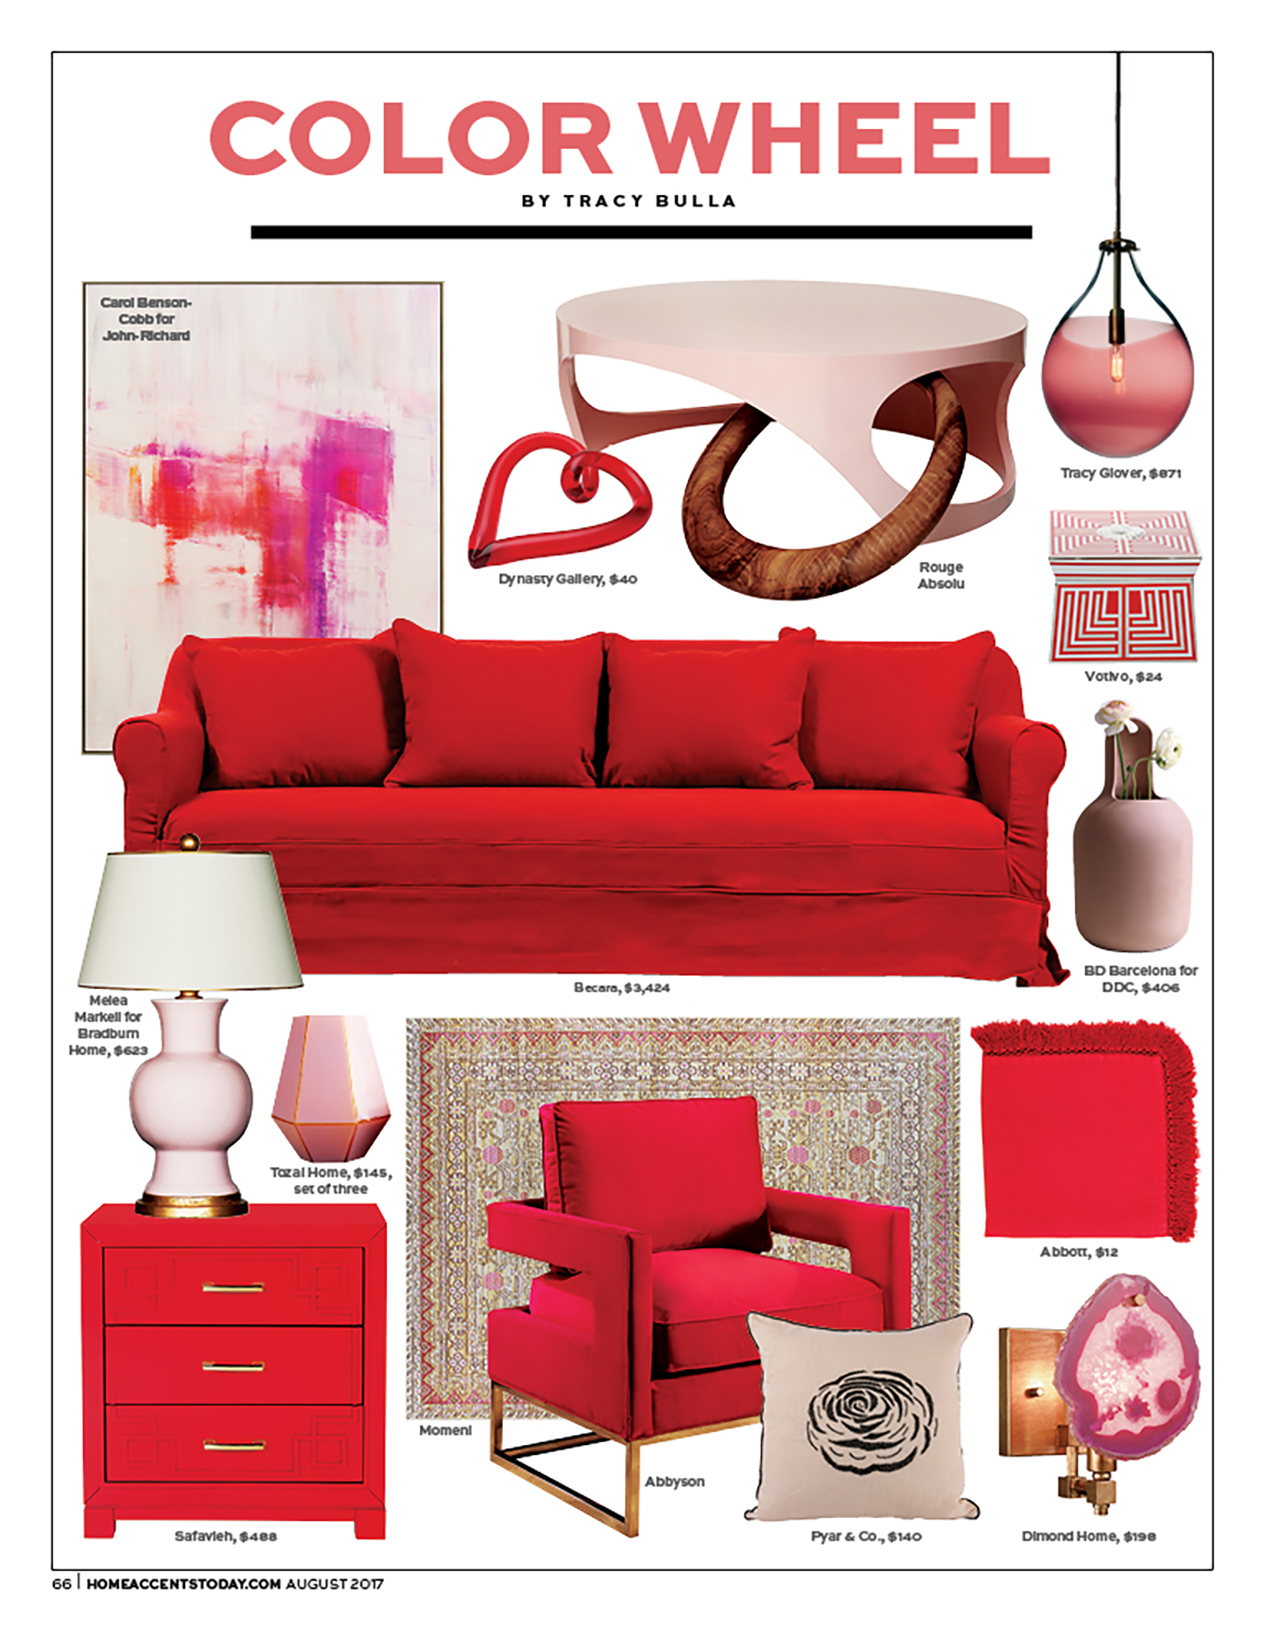 Home Accents Today - August 2017 Color Wheel